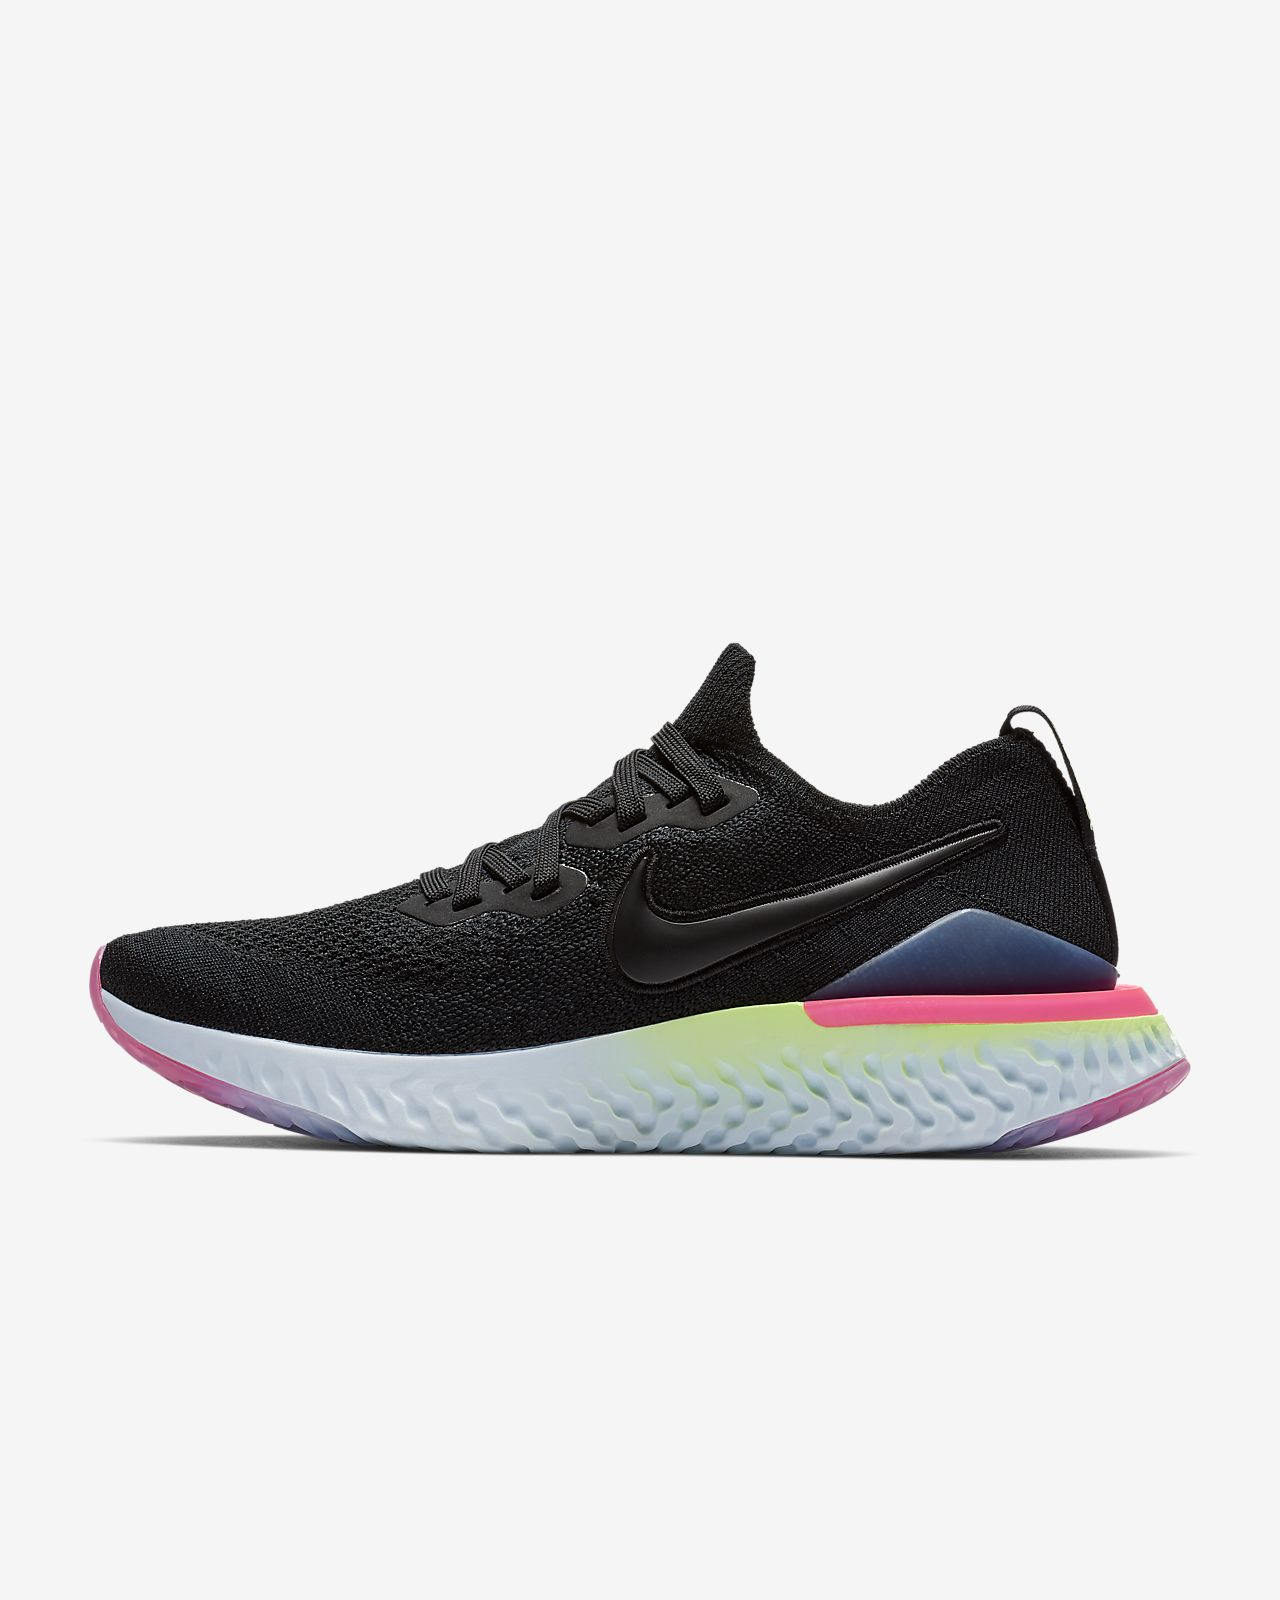 de80ddba9244 ... Nike Epic React Flyknit 2 Women s Running Shoe